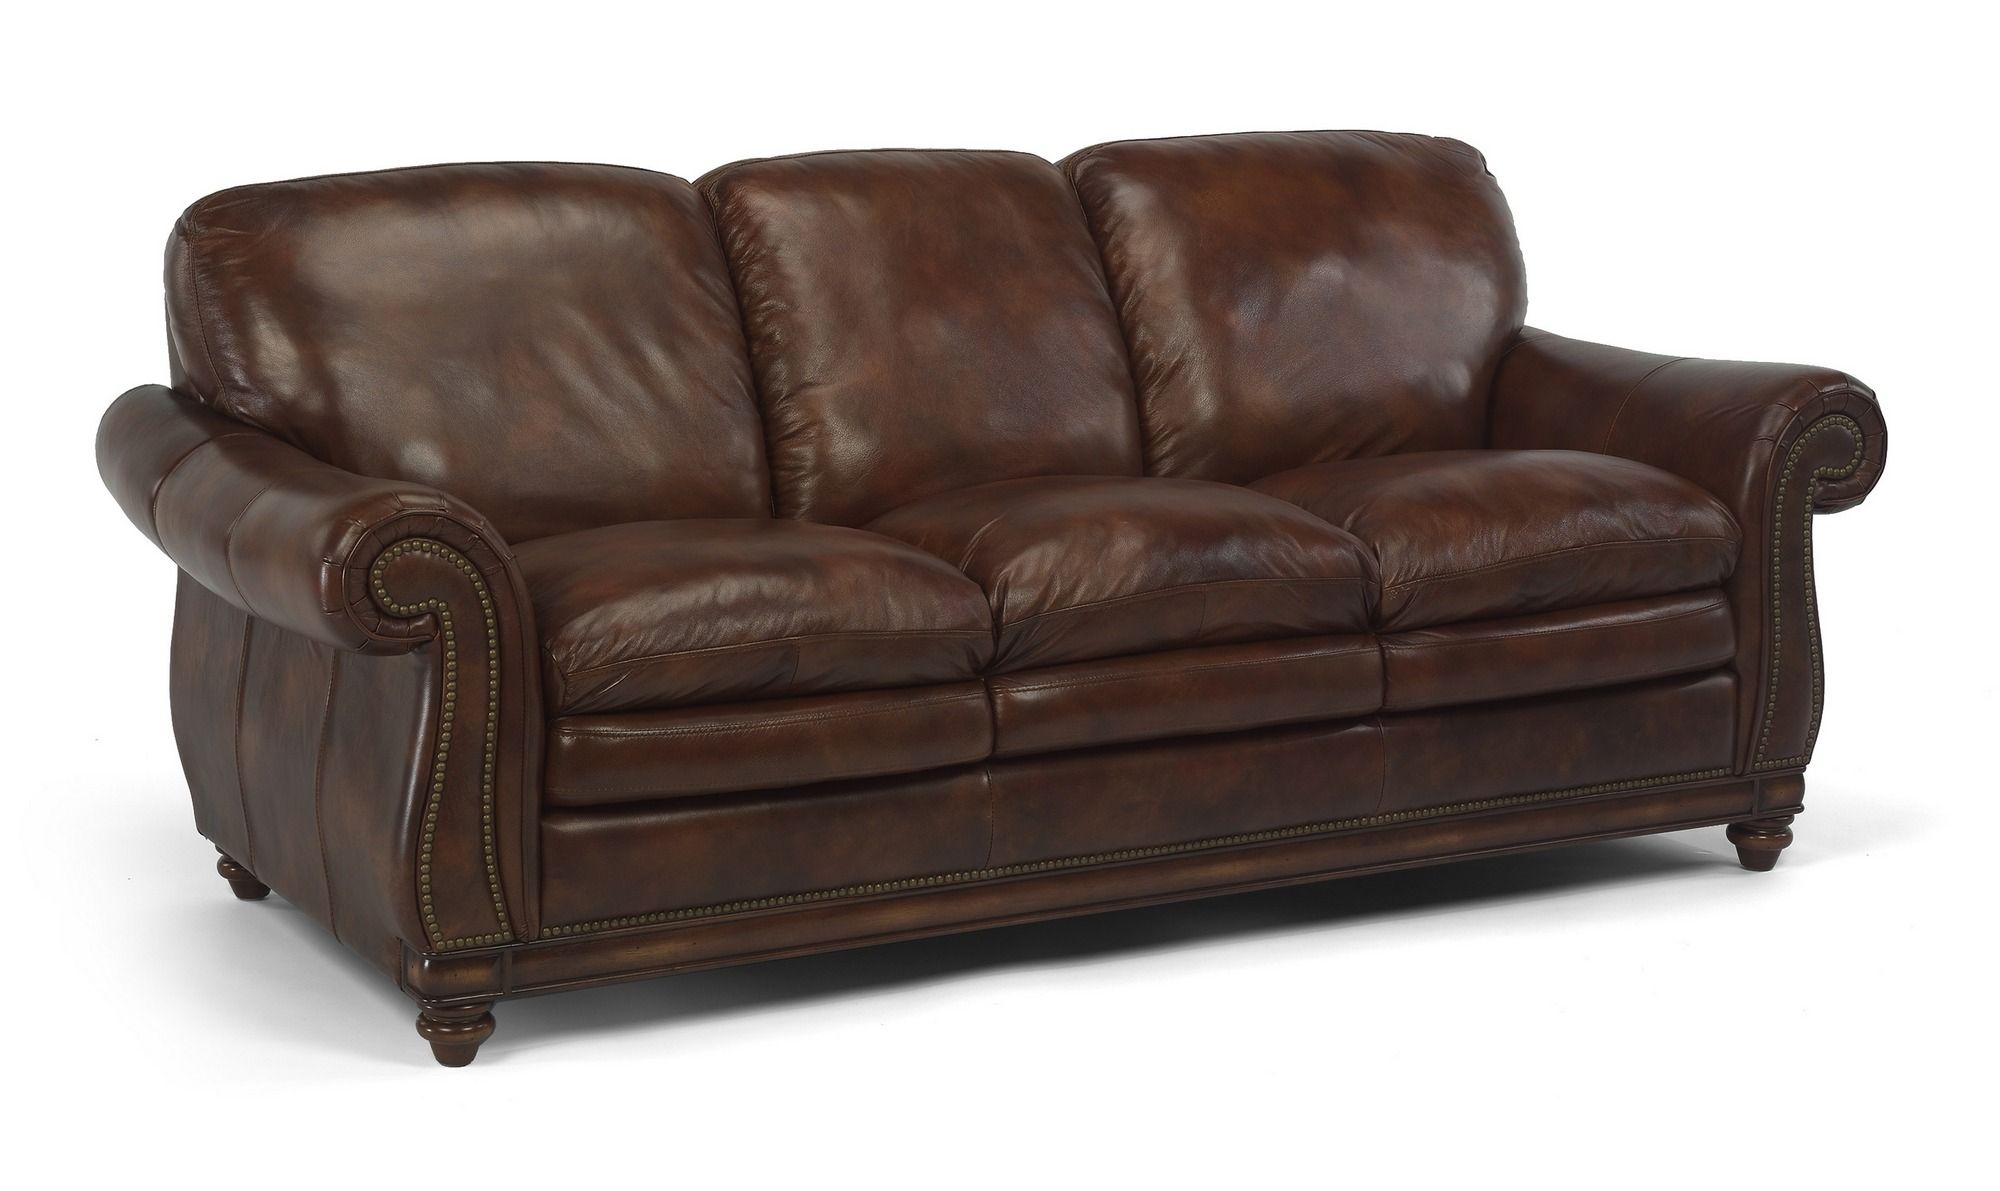 Best 1606 31 Flexsteel Leather Sofa Available In Several Colo 400 x 300